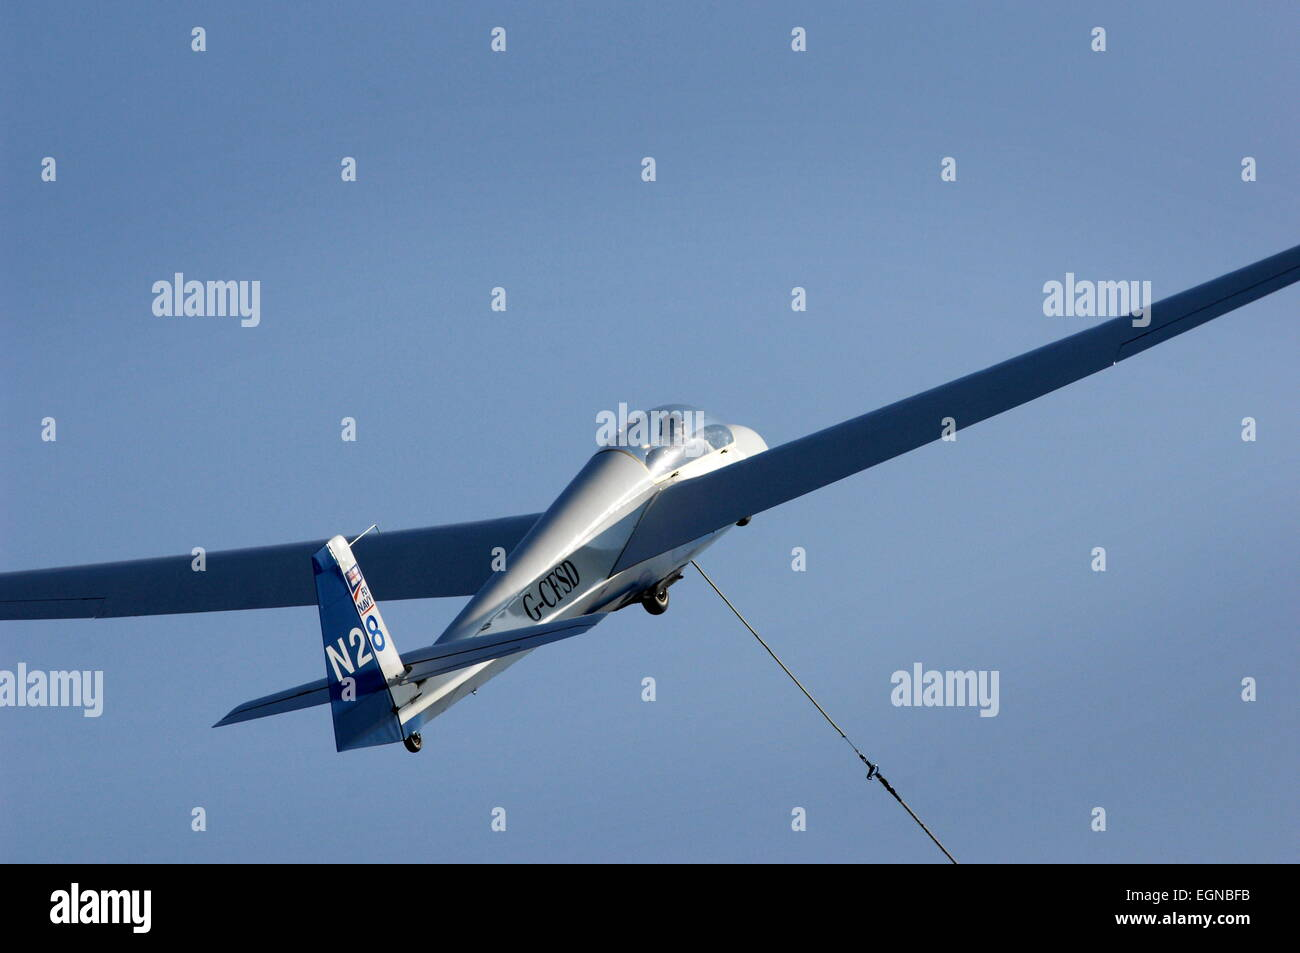 AJAXNETPHOTO - 30TH JULY, 2011. LEE-ON-THE-SOLENT, ENGLAND. - UP UP AND AWAY! - A PNGC SINGLE SEAT GLIDER RACES - Stock Image